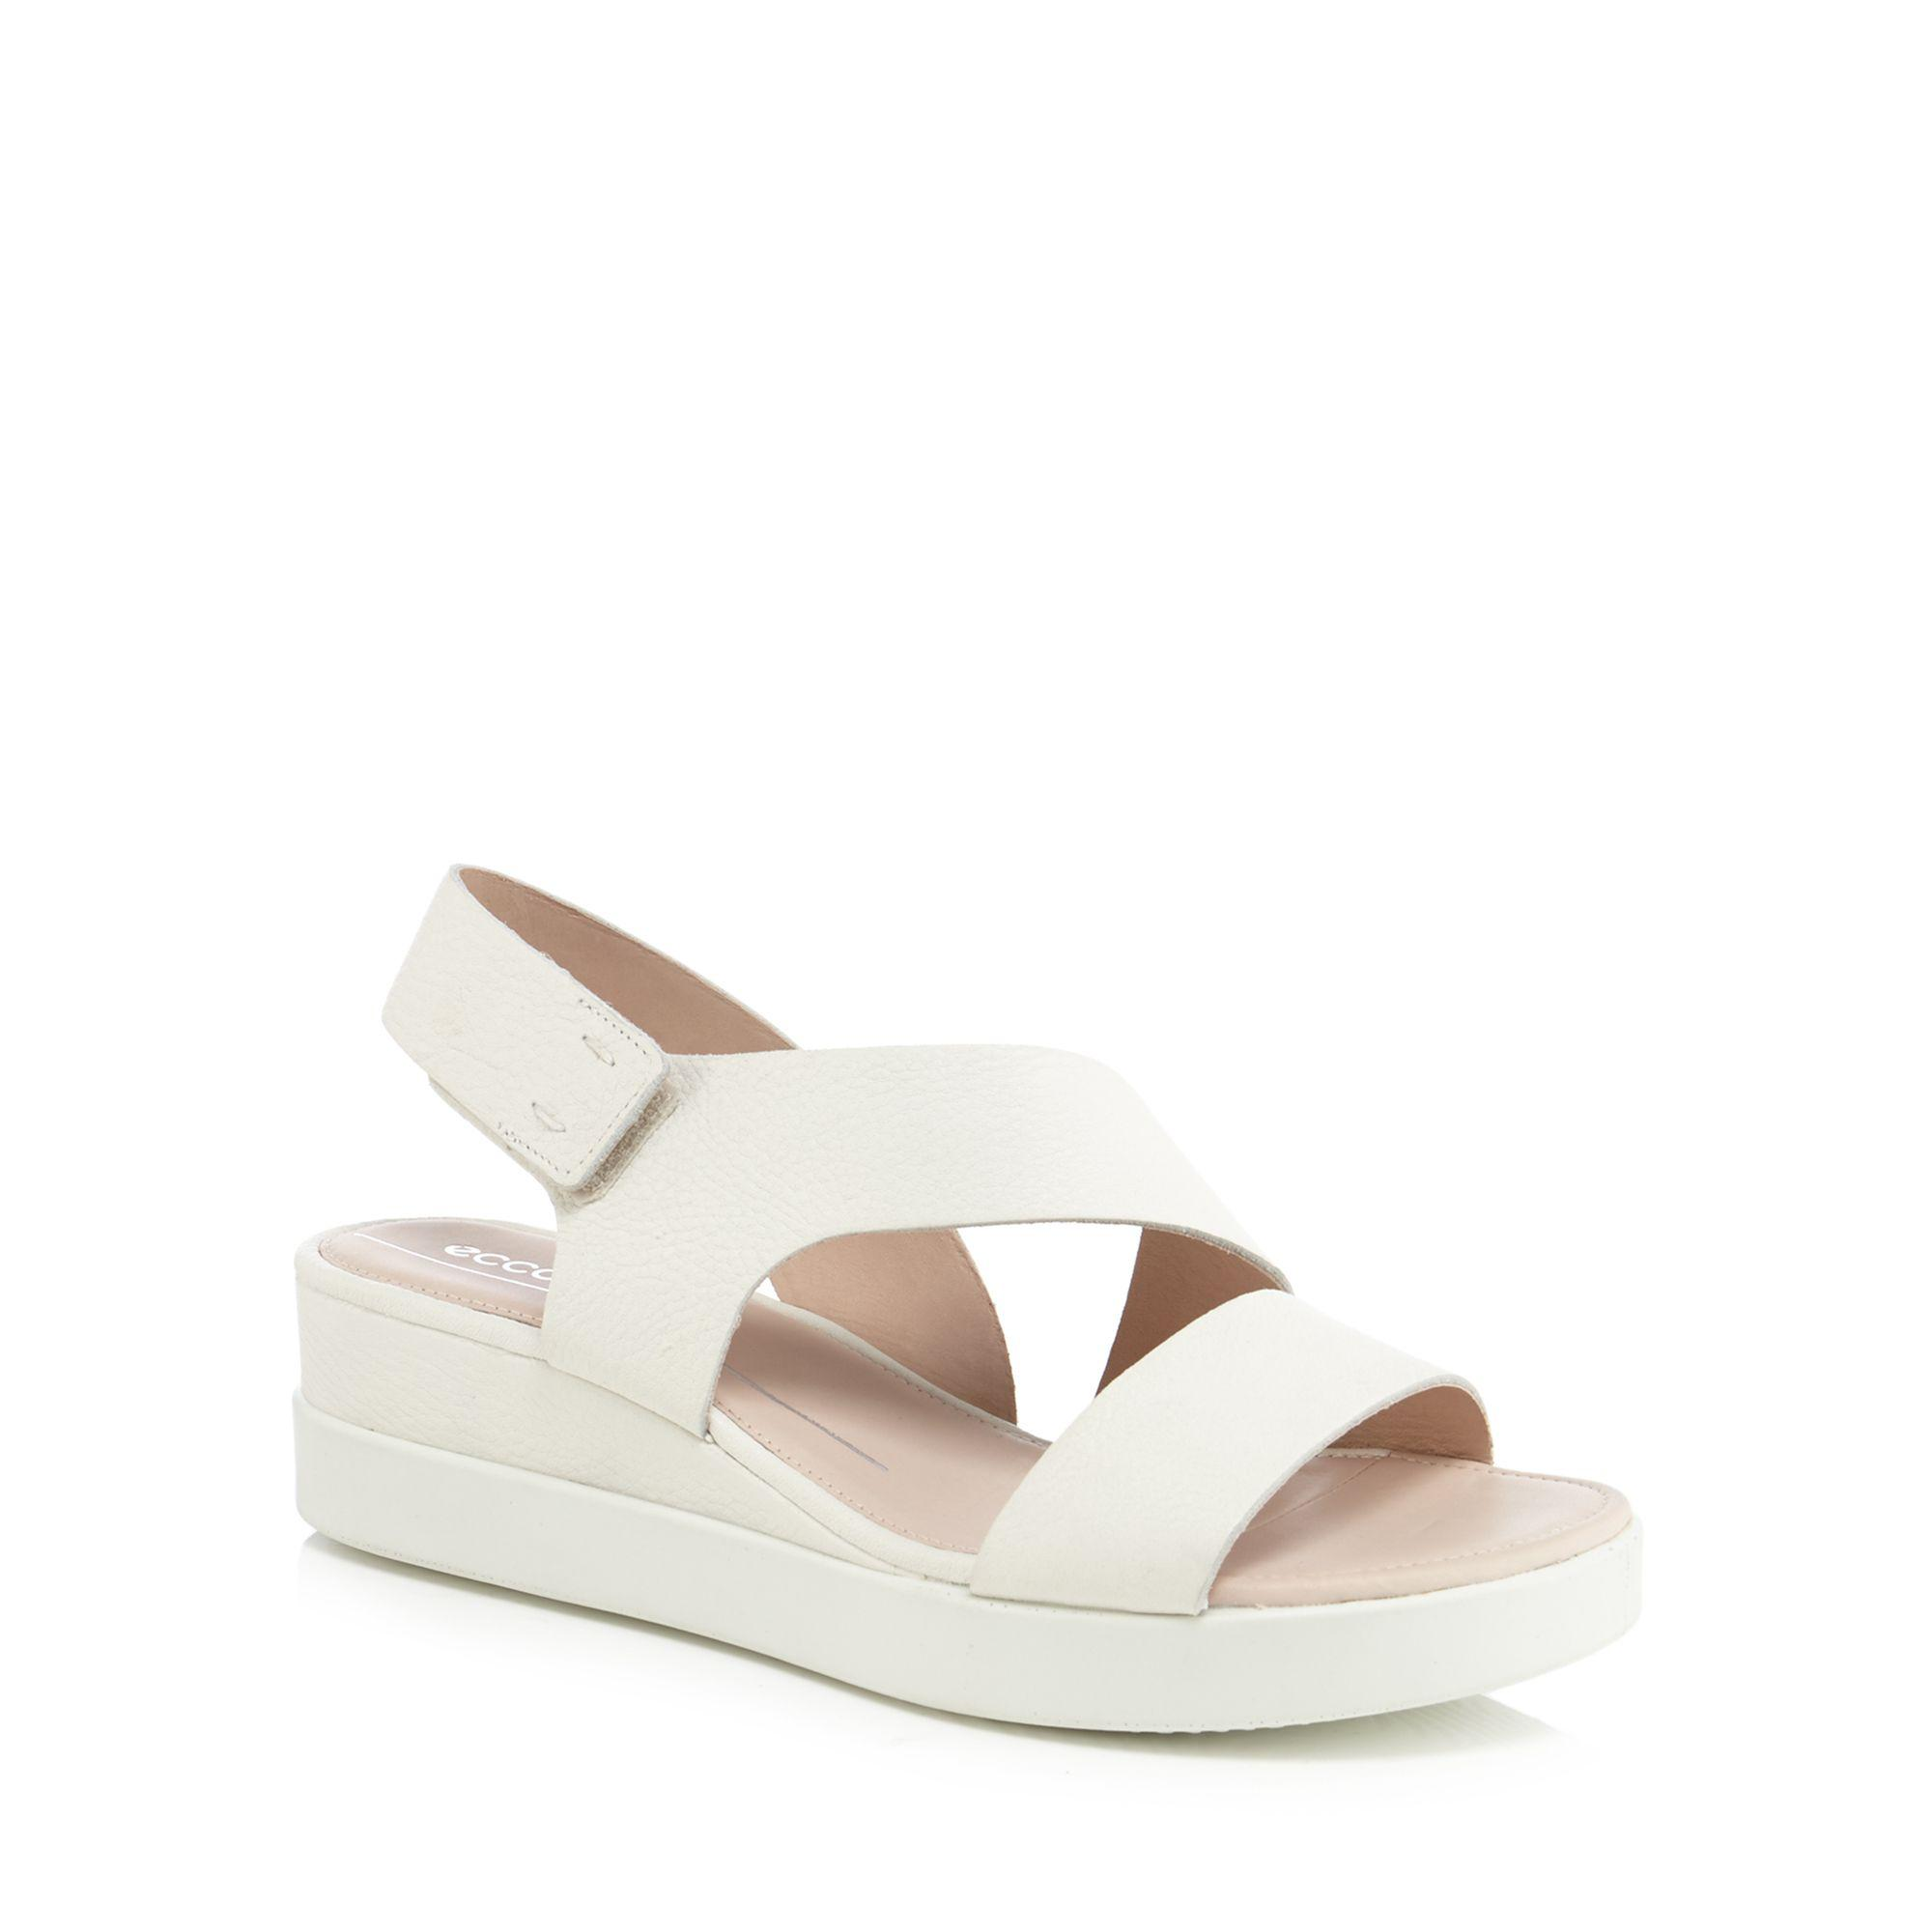 15843e8d25b Ecco White Leather  touch Sandal Plateau  Mid Wedge Heel Sandals in ...